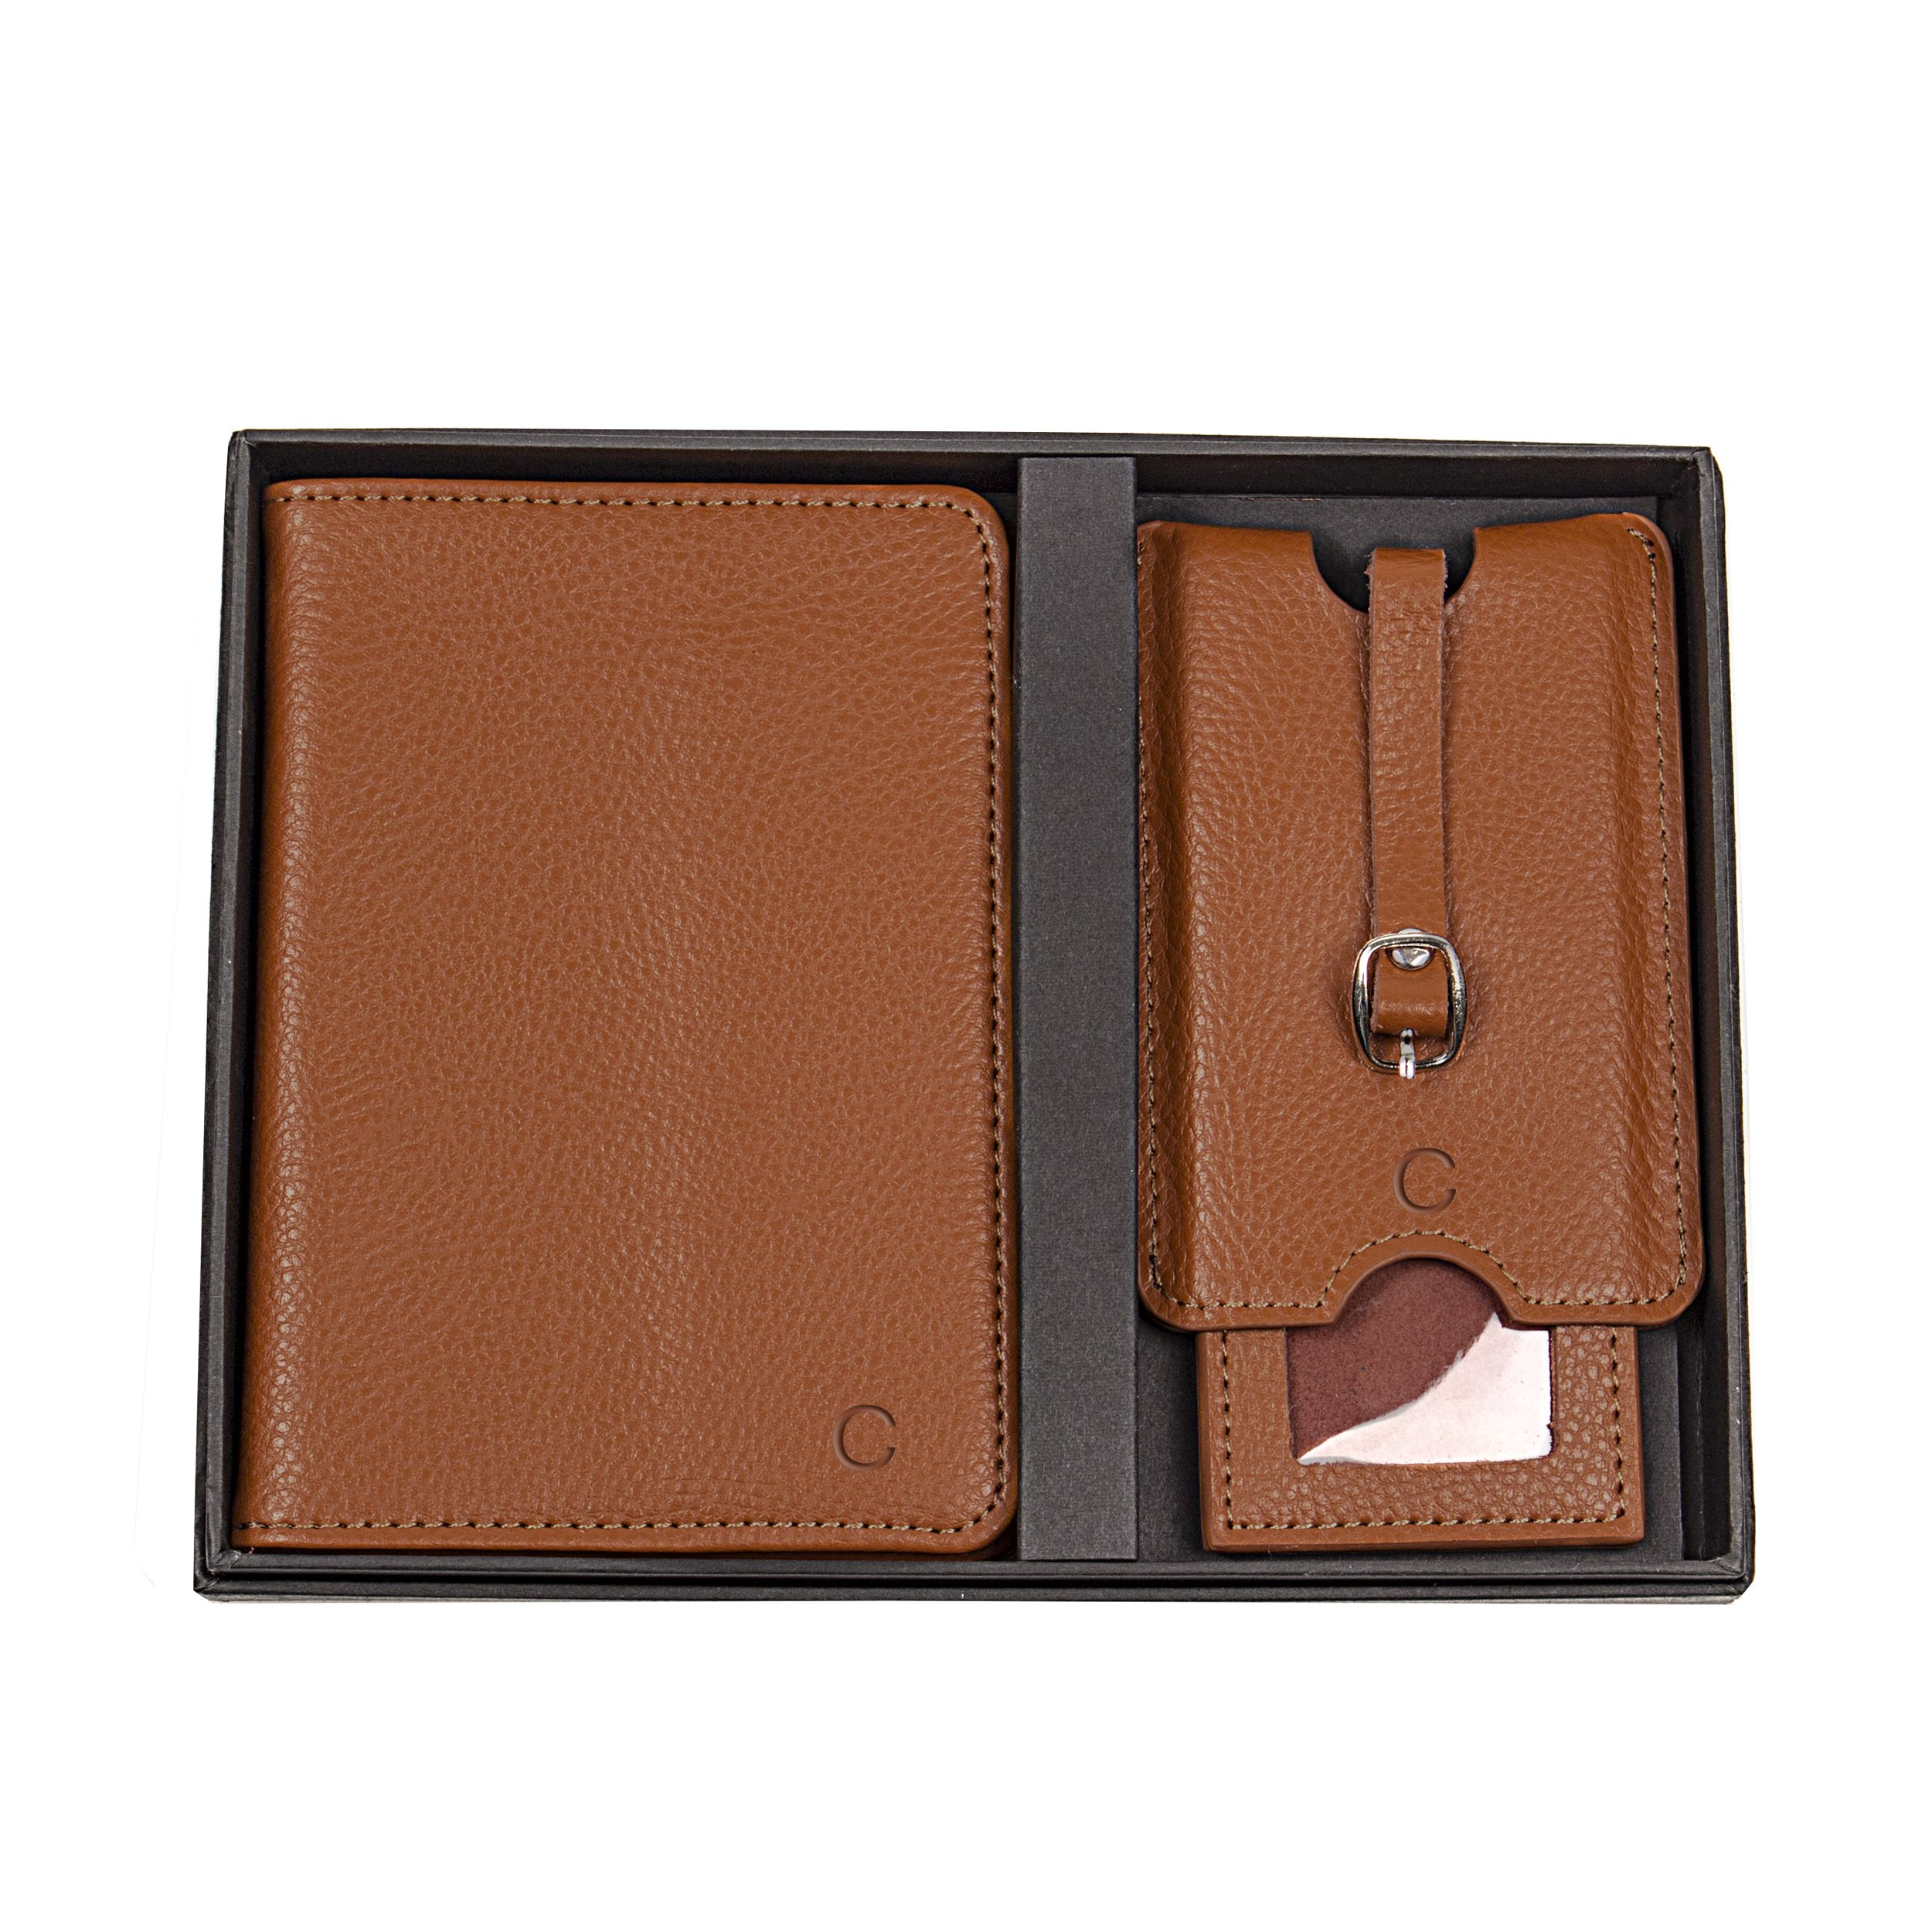 Cathy's Concepts Personalized Leather Passport Holder & Luggage Tag Set, Brown, Letter C